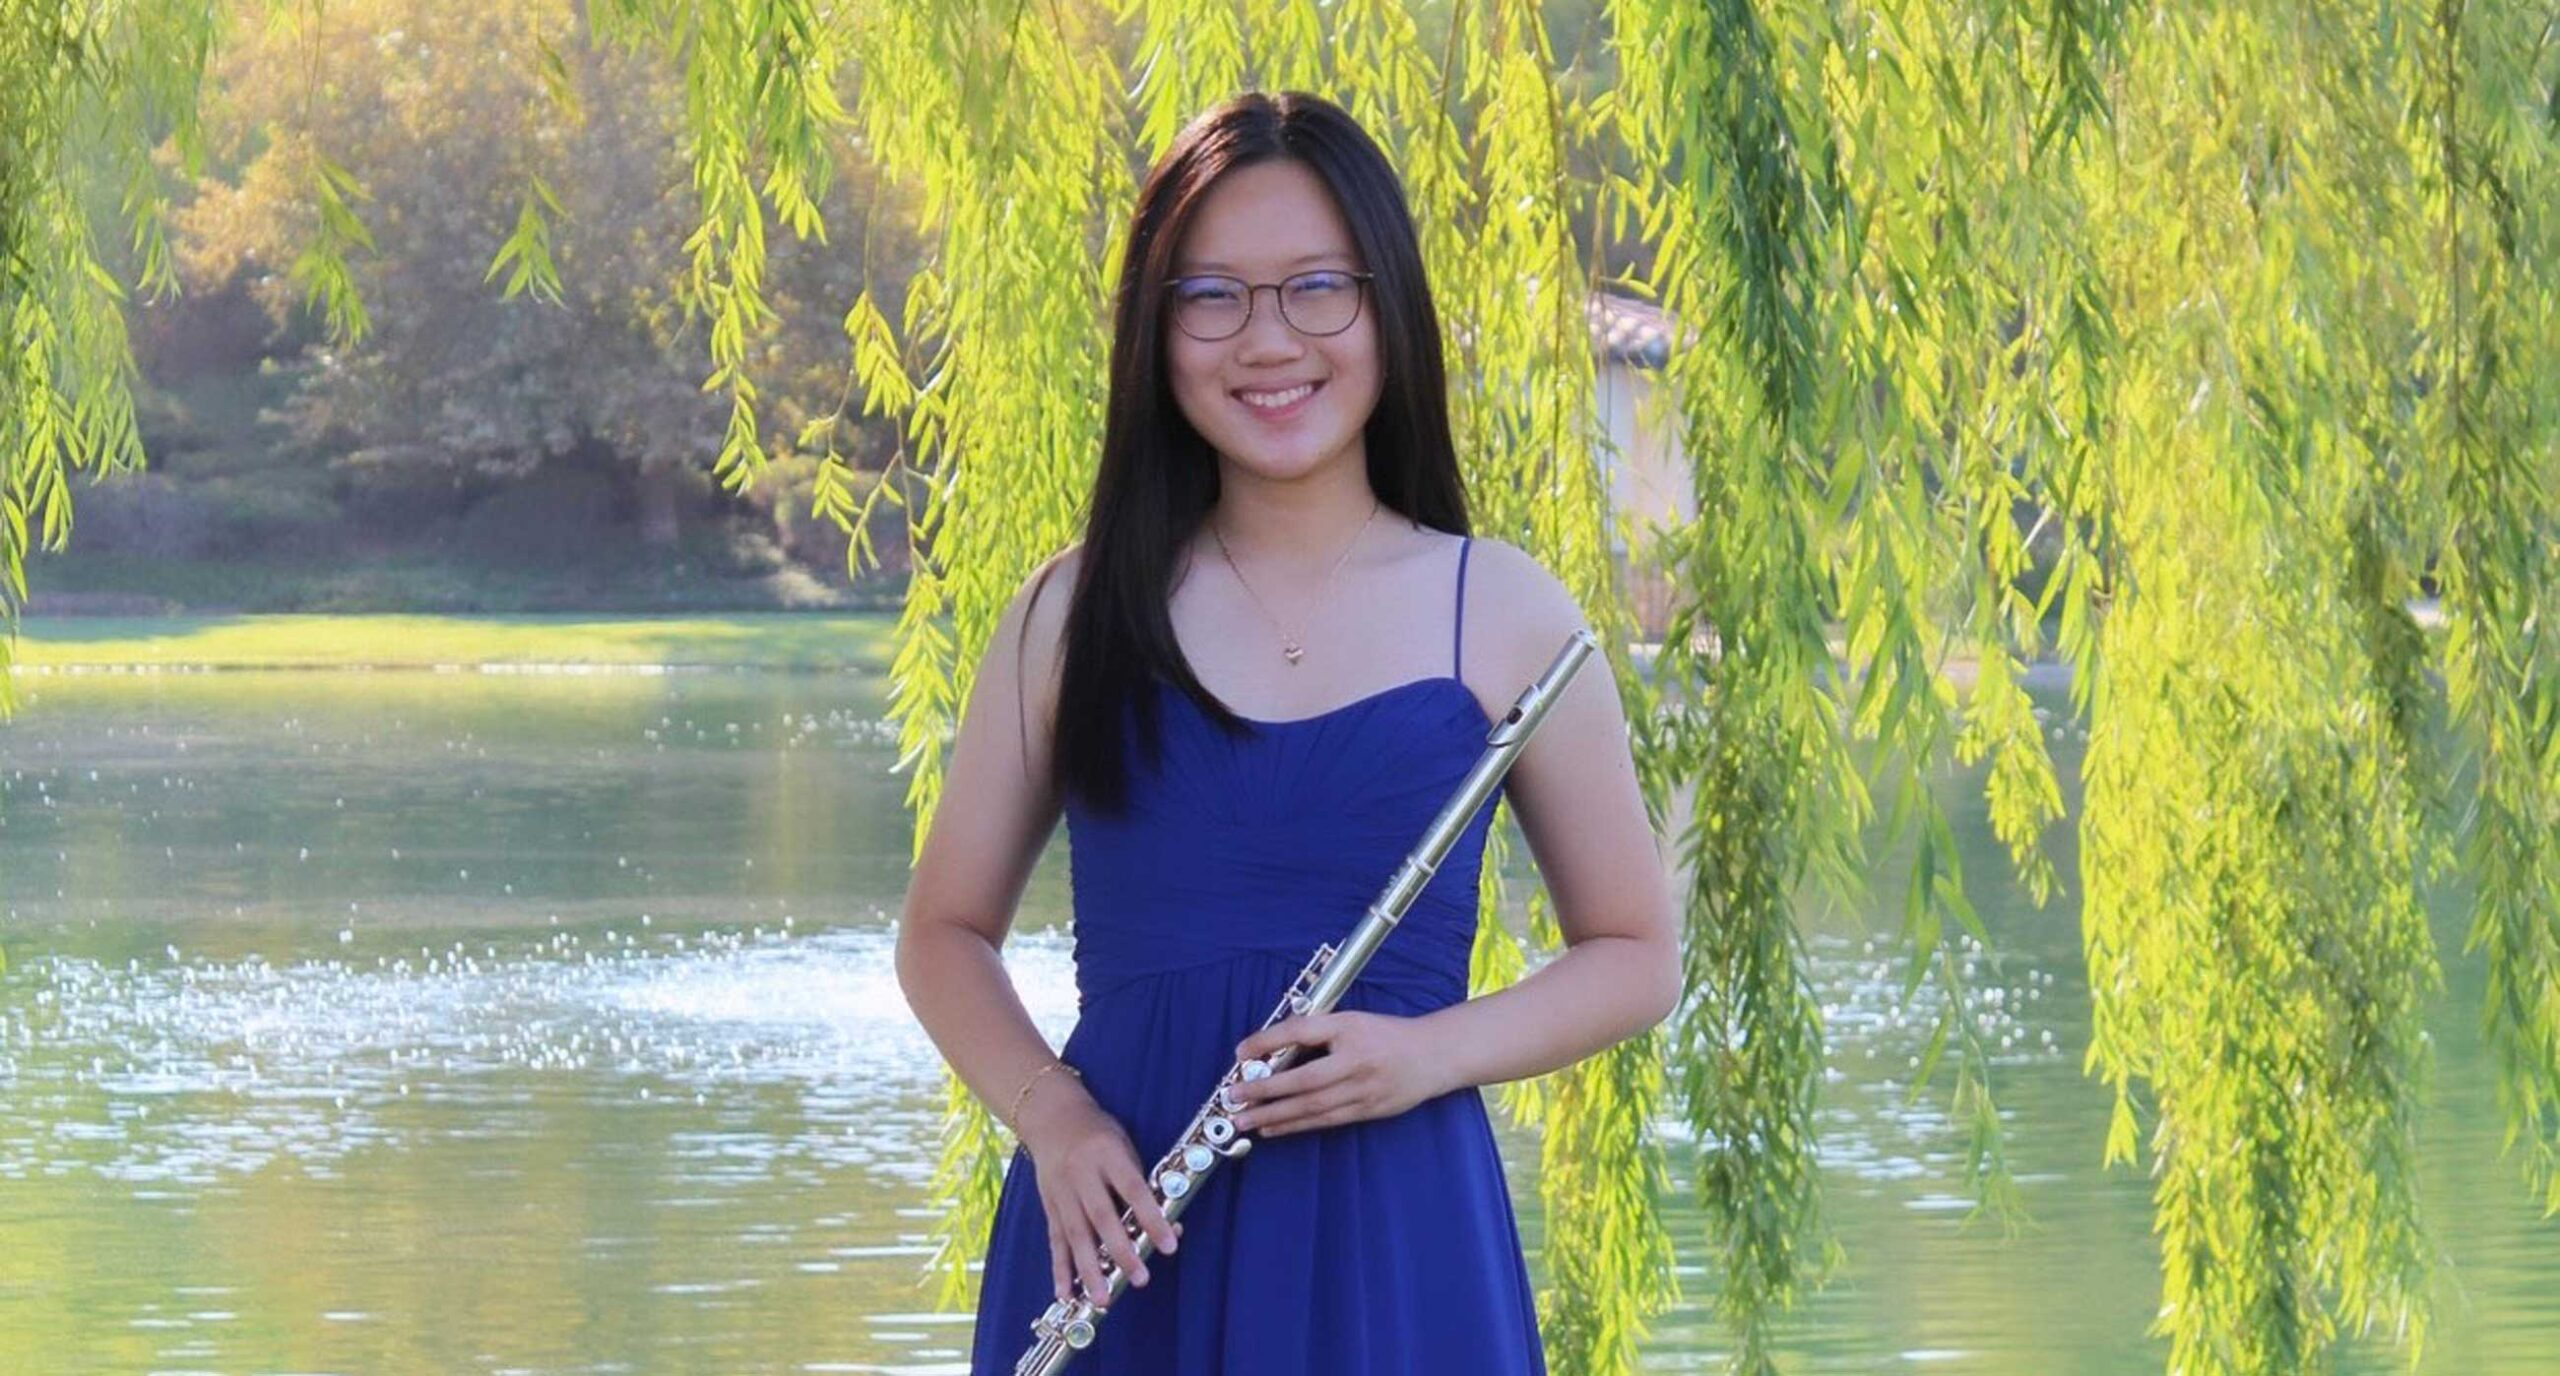 Celine Chen wearing a blue dress holding a flute, standing in front of a pond with tree branches with green leaves